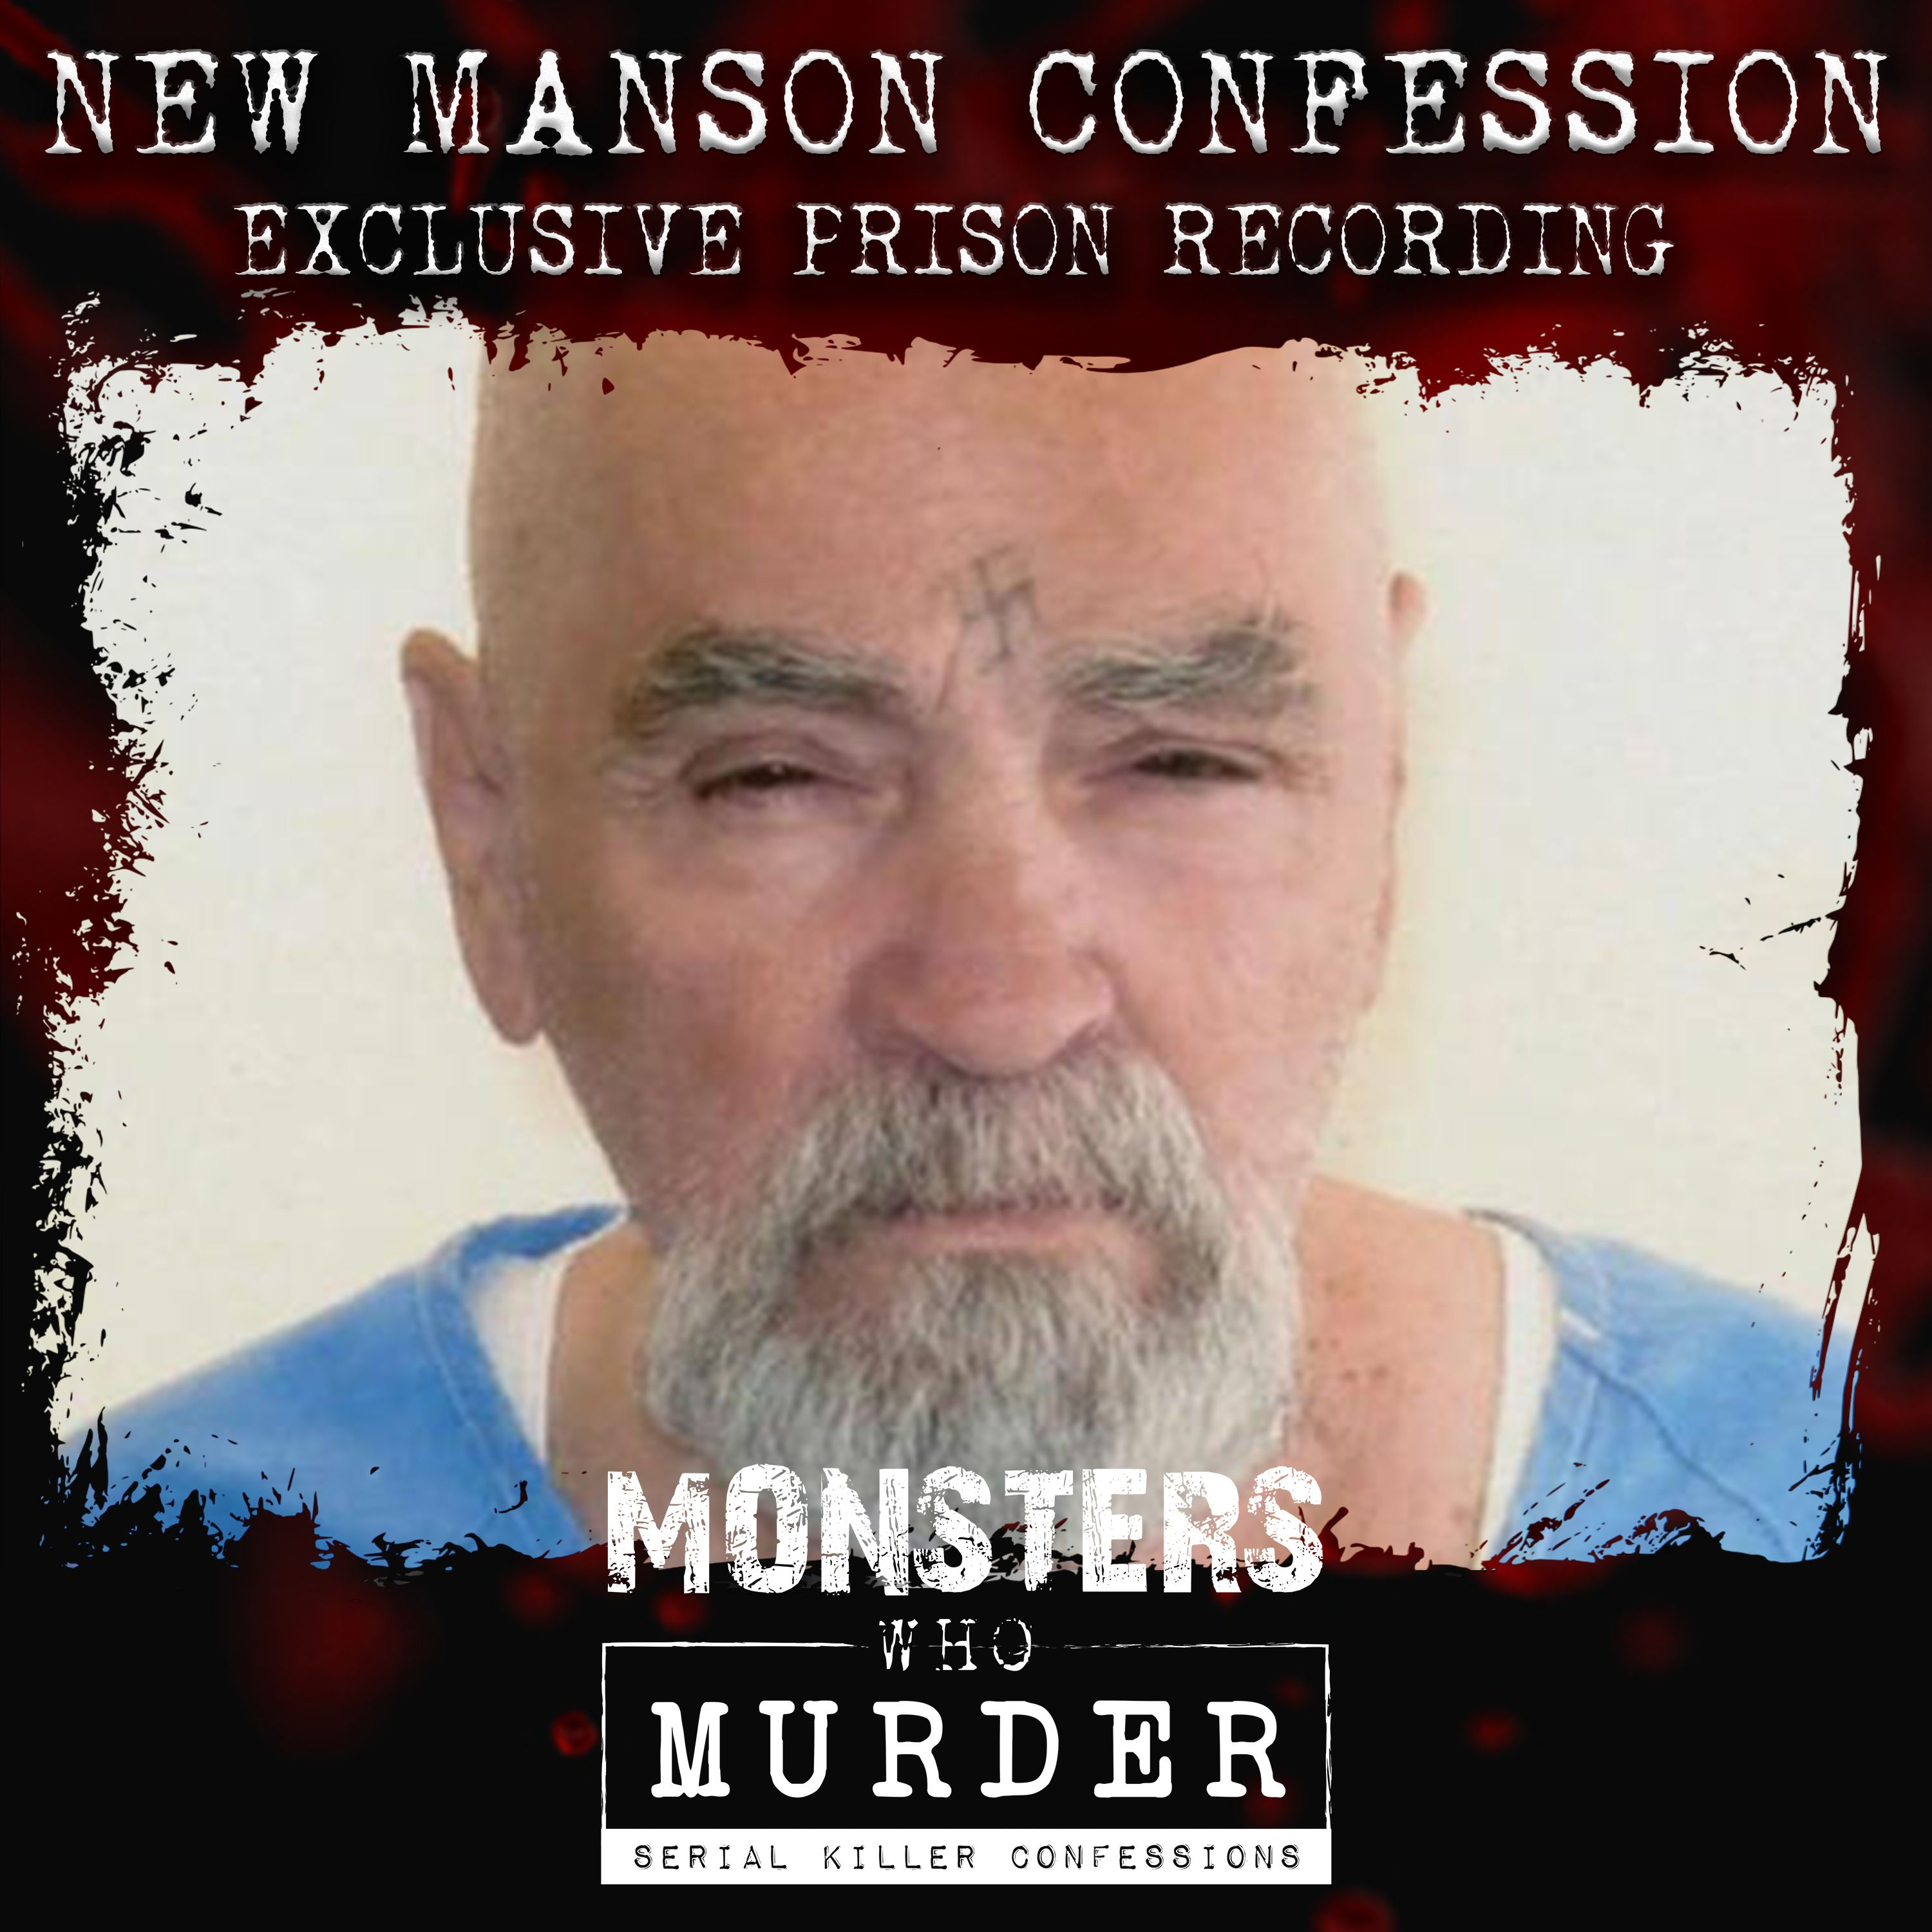 S05E09 NEW Charles Manson confession PLUS LaBianca Murders, Bruce McArthur, Derek Sam, Jane Andrews AND Nikos Metaxas